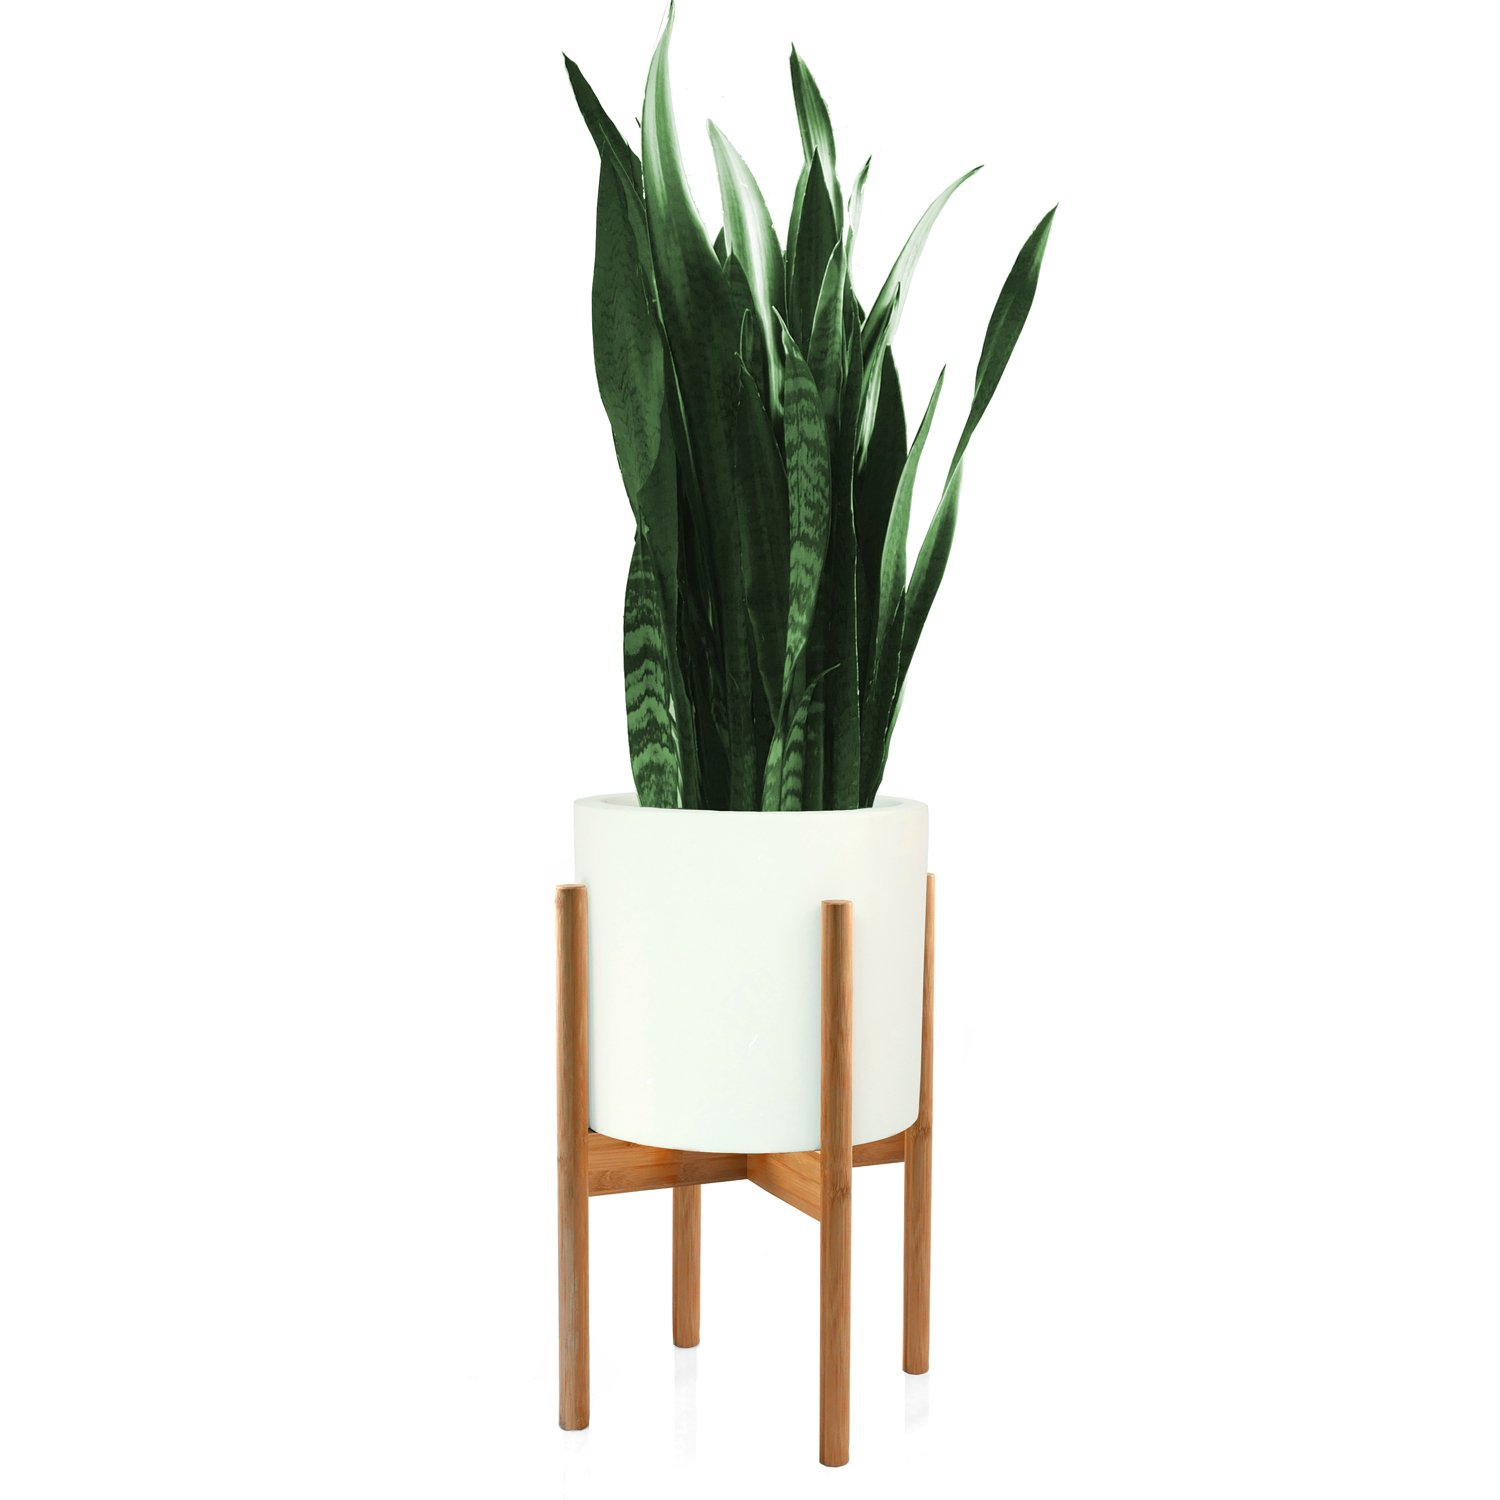 Fox & Fern Mid-Century Modern Plant Stand - Bamboo - EXCLUDING 10'' White Ceramic Planter Pot